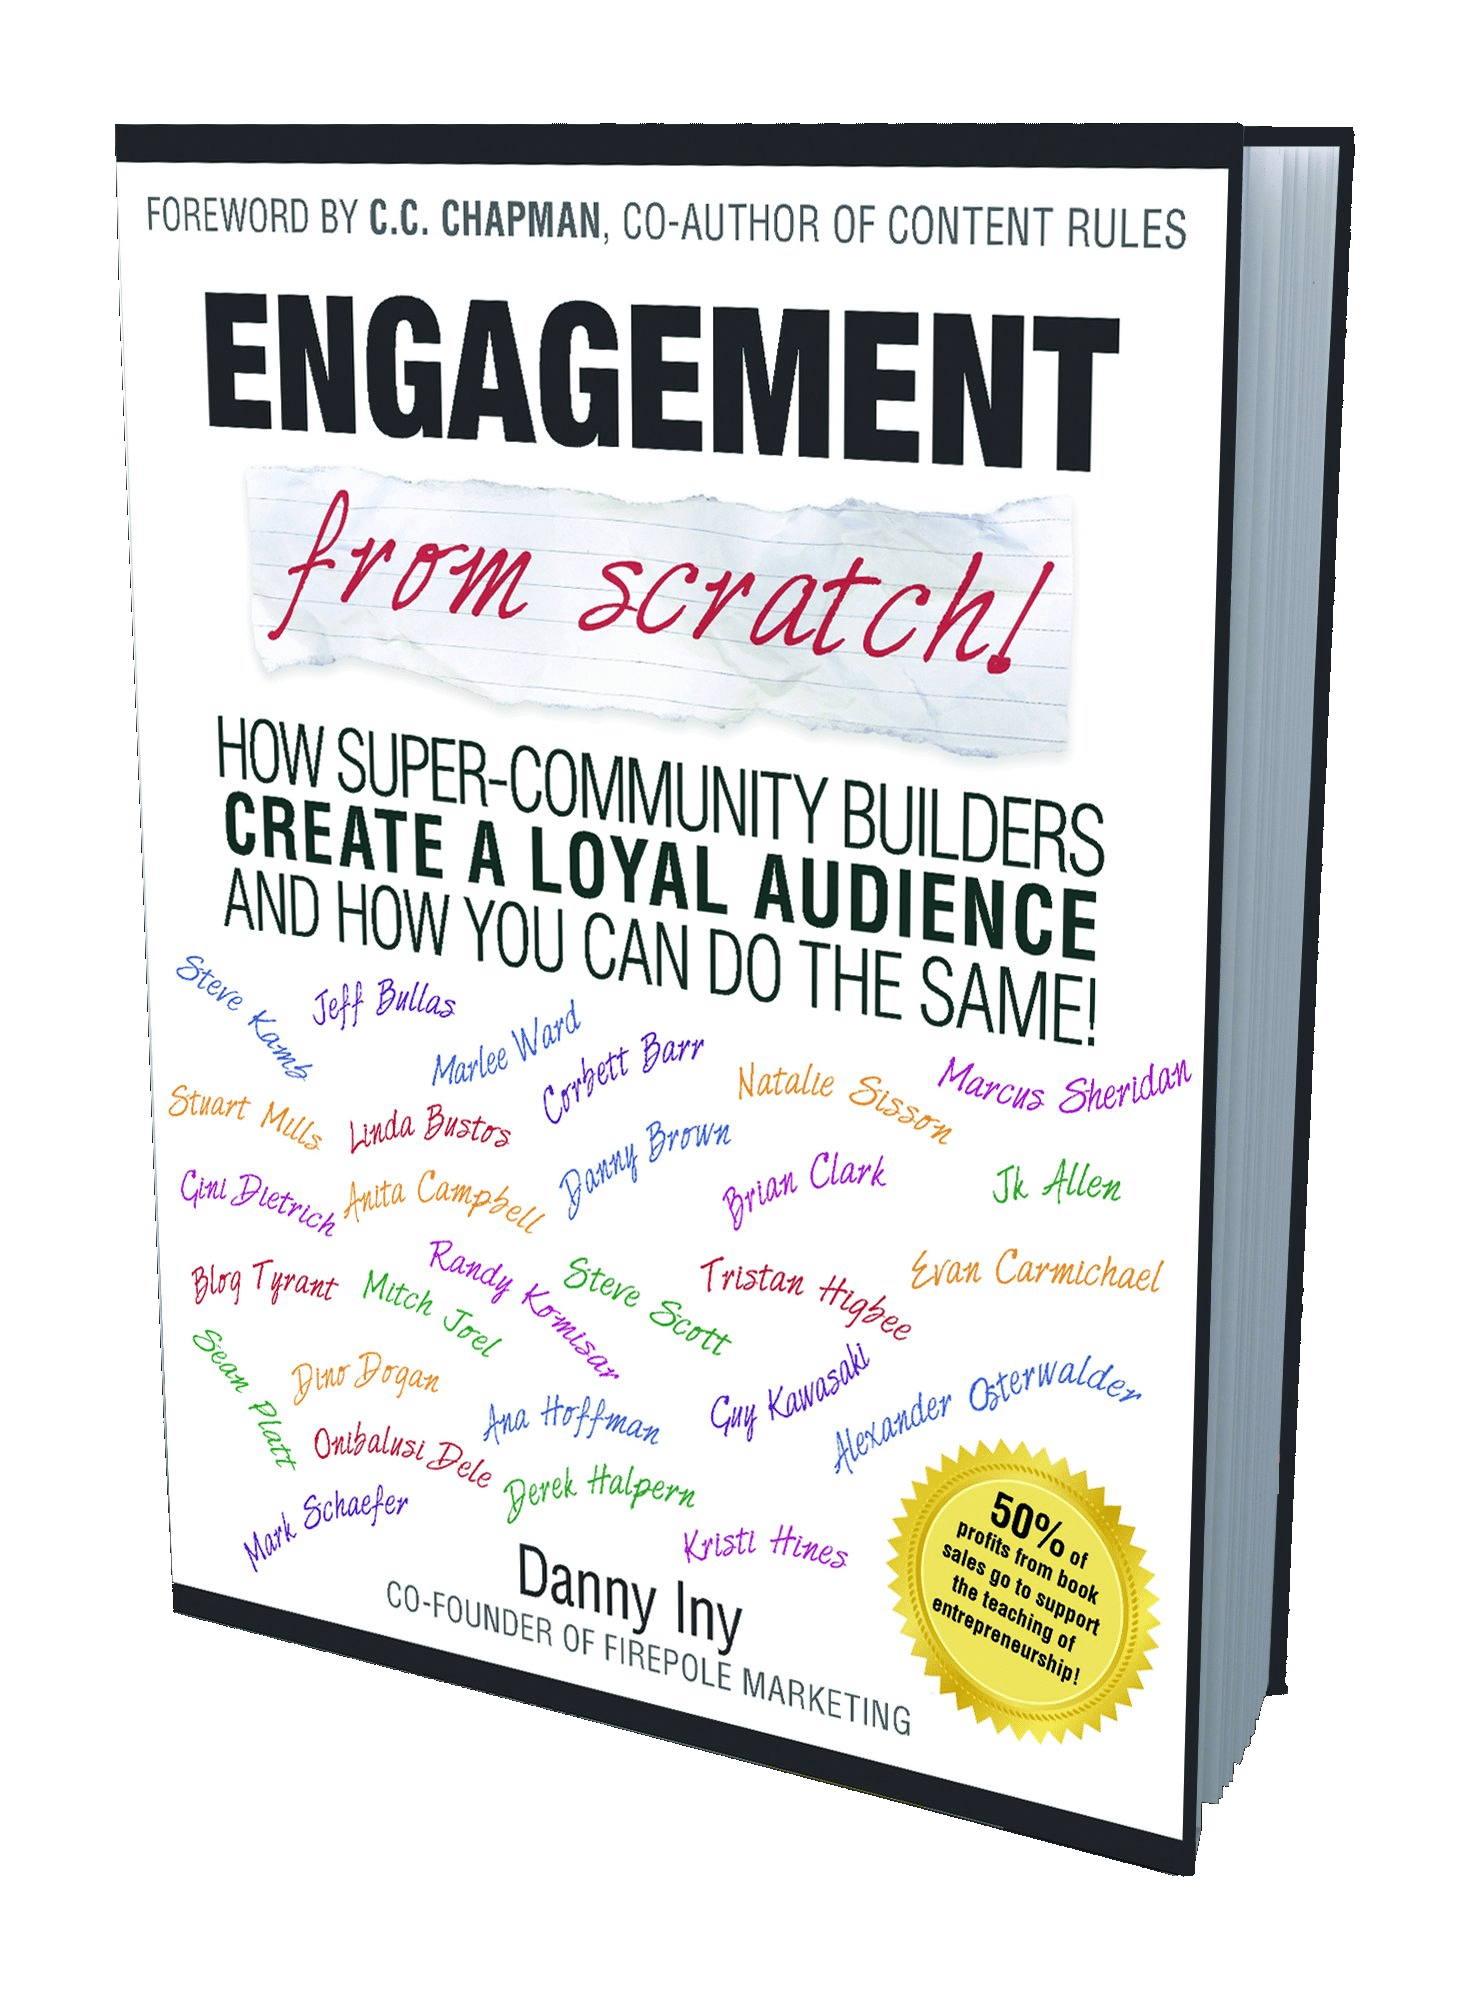 Engagement from Scratch by Danny Iny